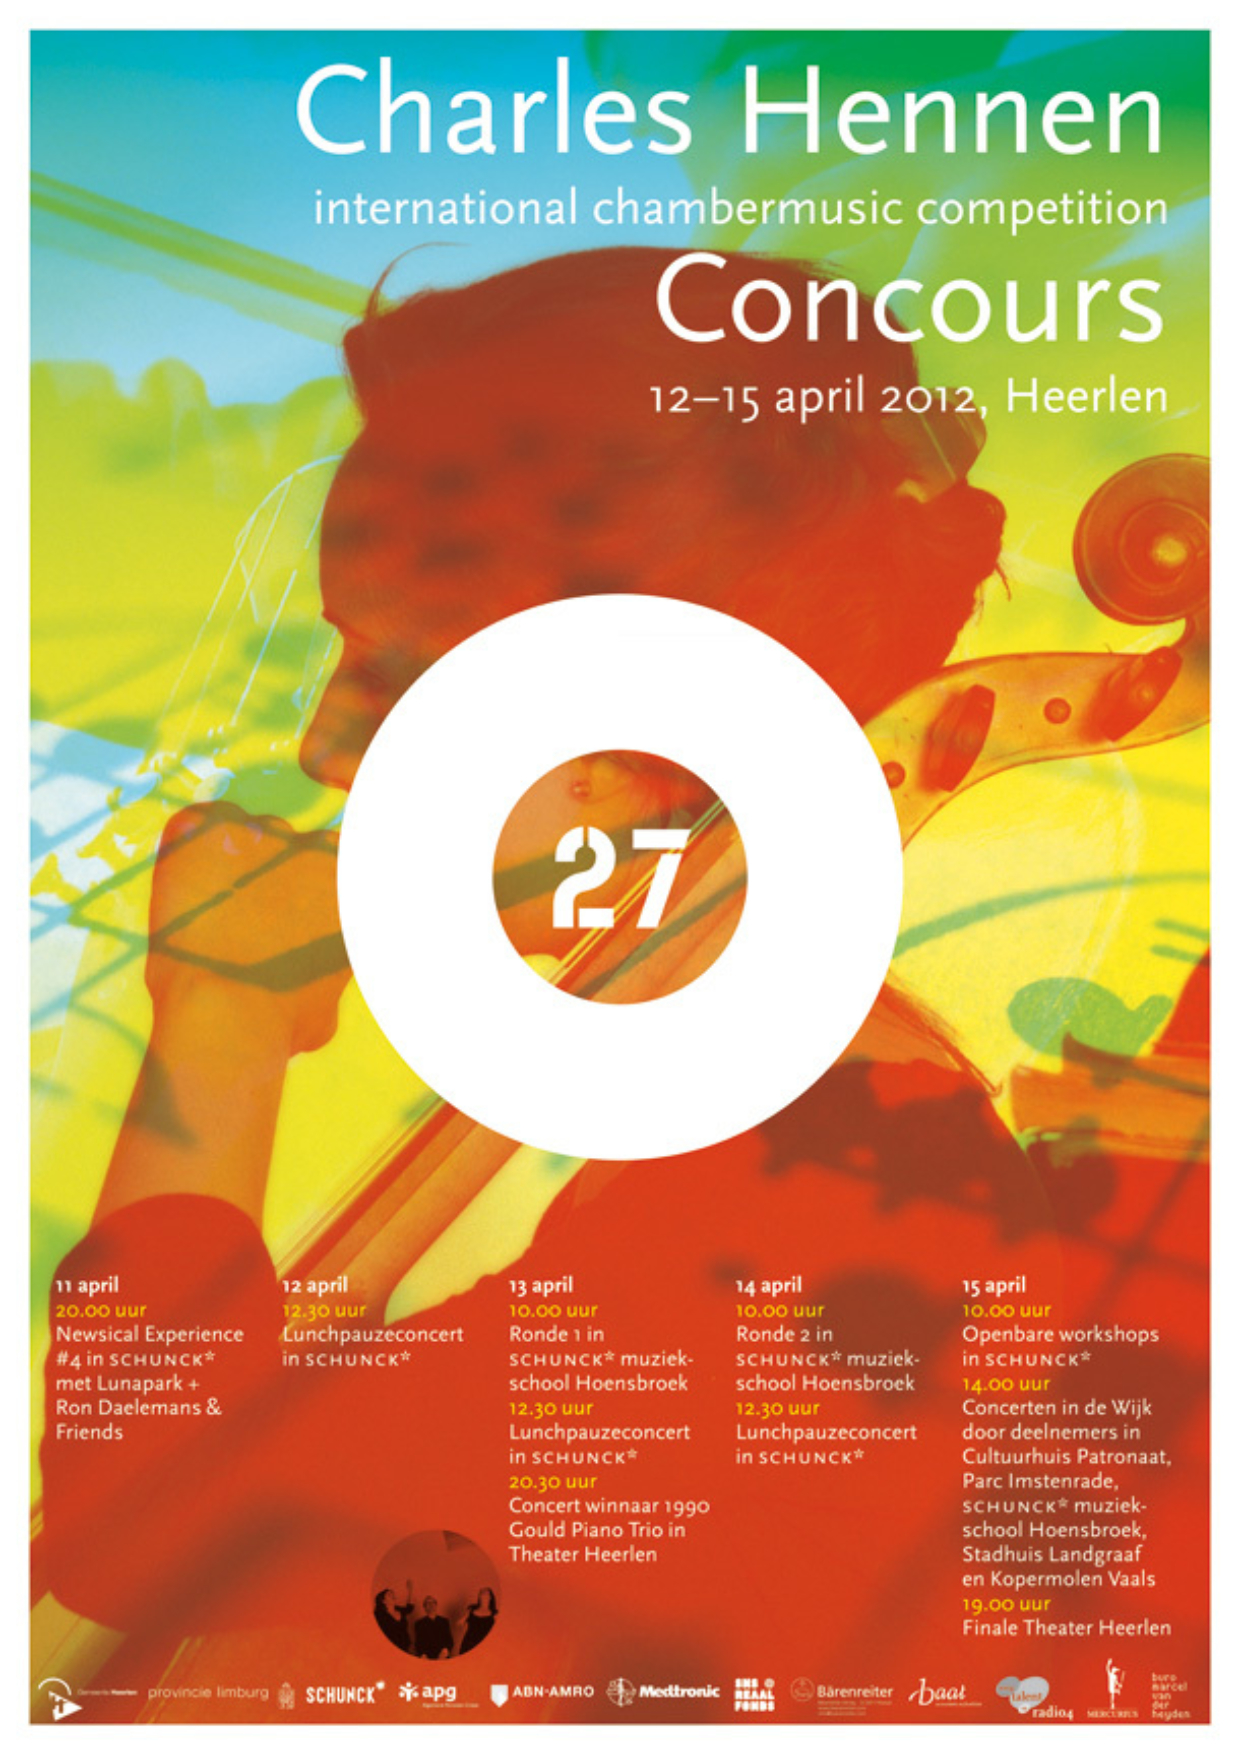 Affice Charles Hennen Concours